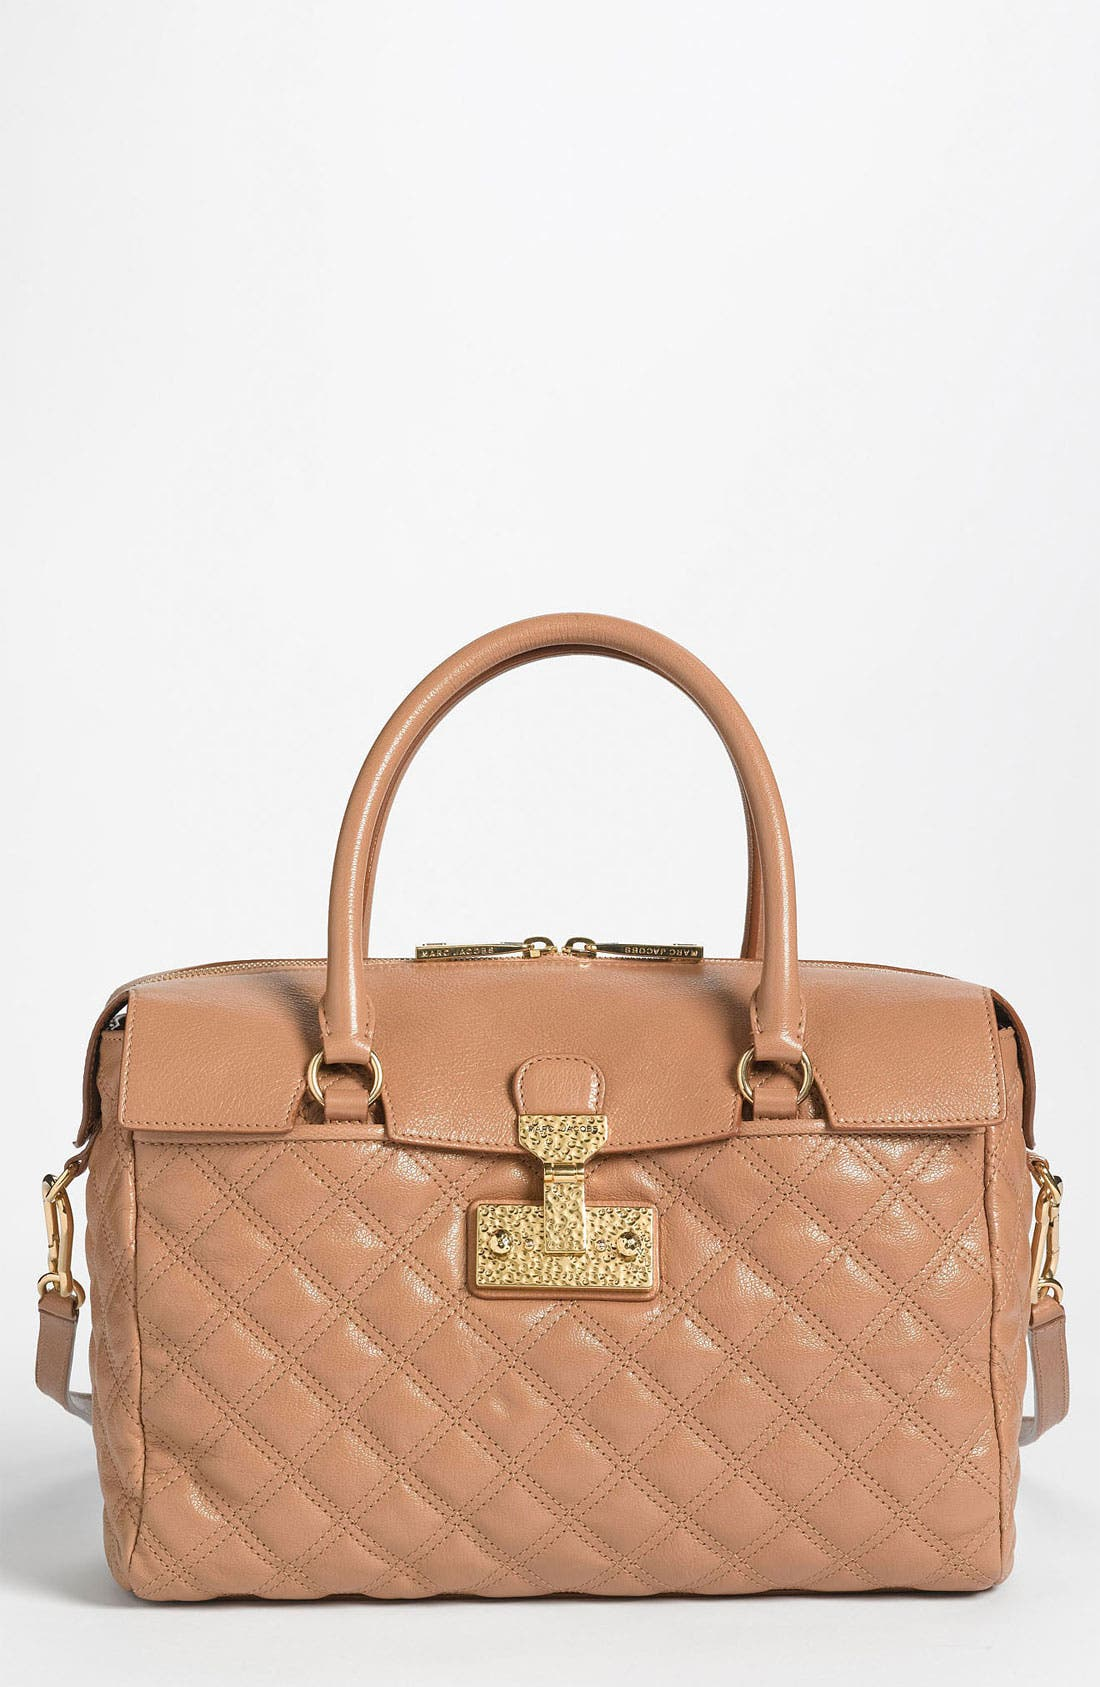 Main Image - MARC JACOBS 'Baroque - Rudi' Leather Satchel